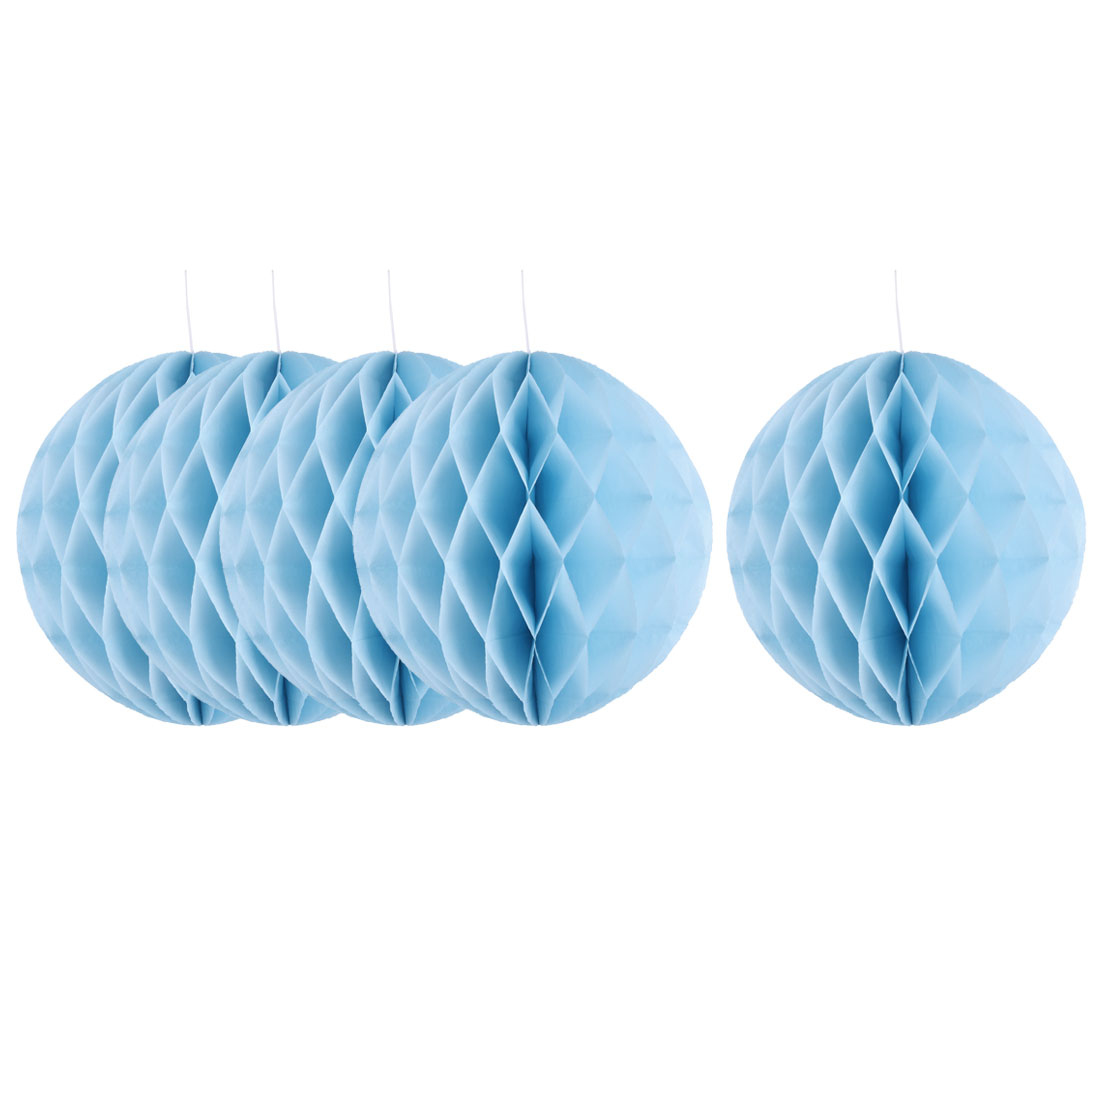 Household Party Paper Wall Window Door DIY Decoration Honeycomb Ball Sky Blue 12 Inch Dia 5 Pcs